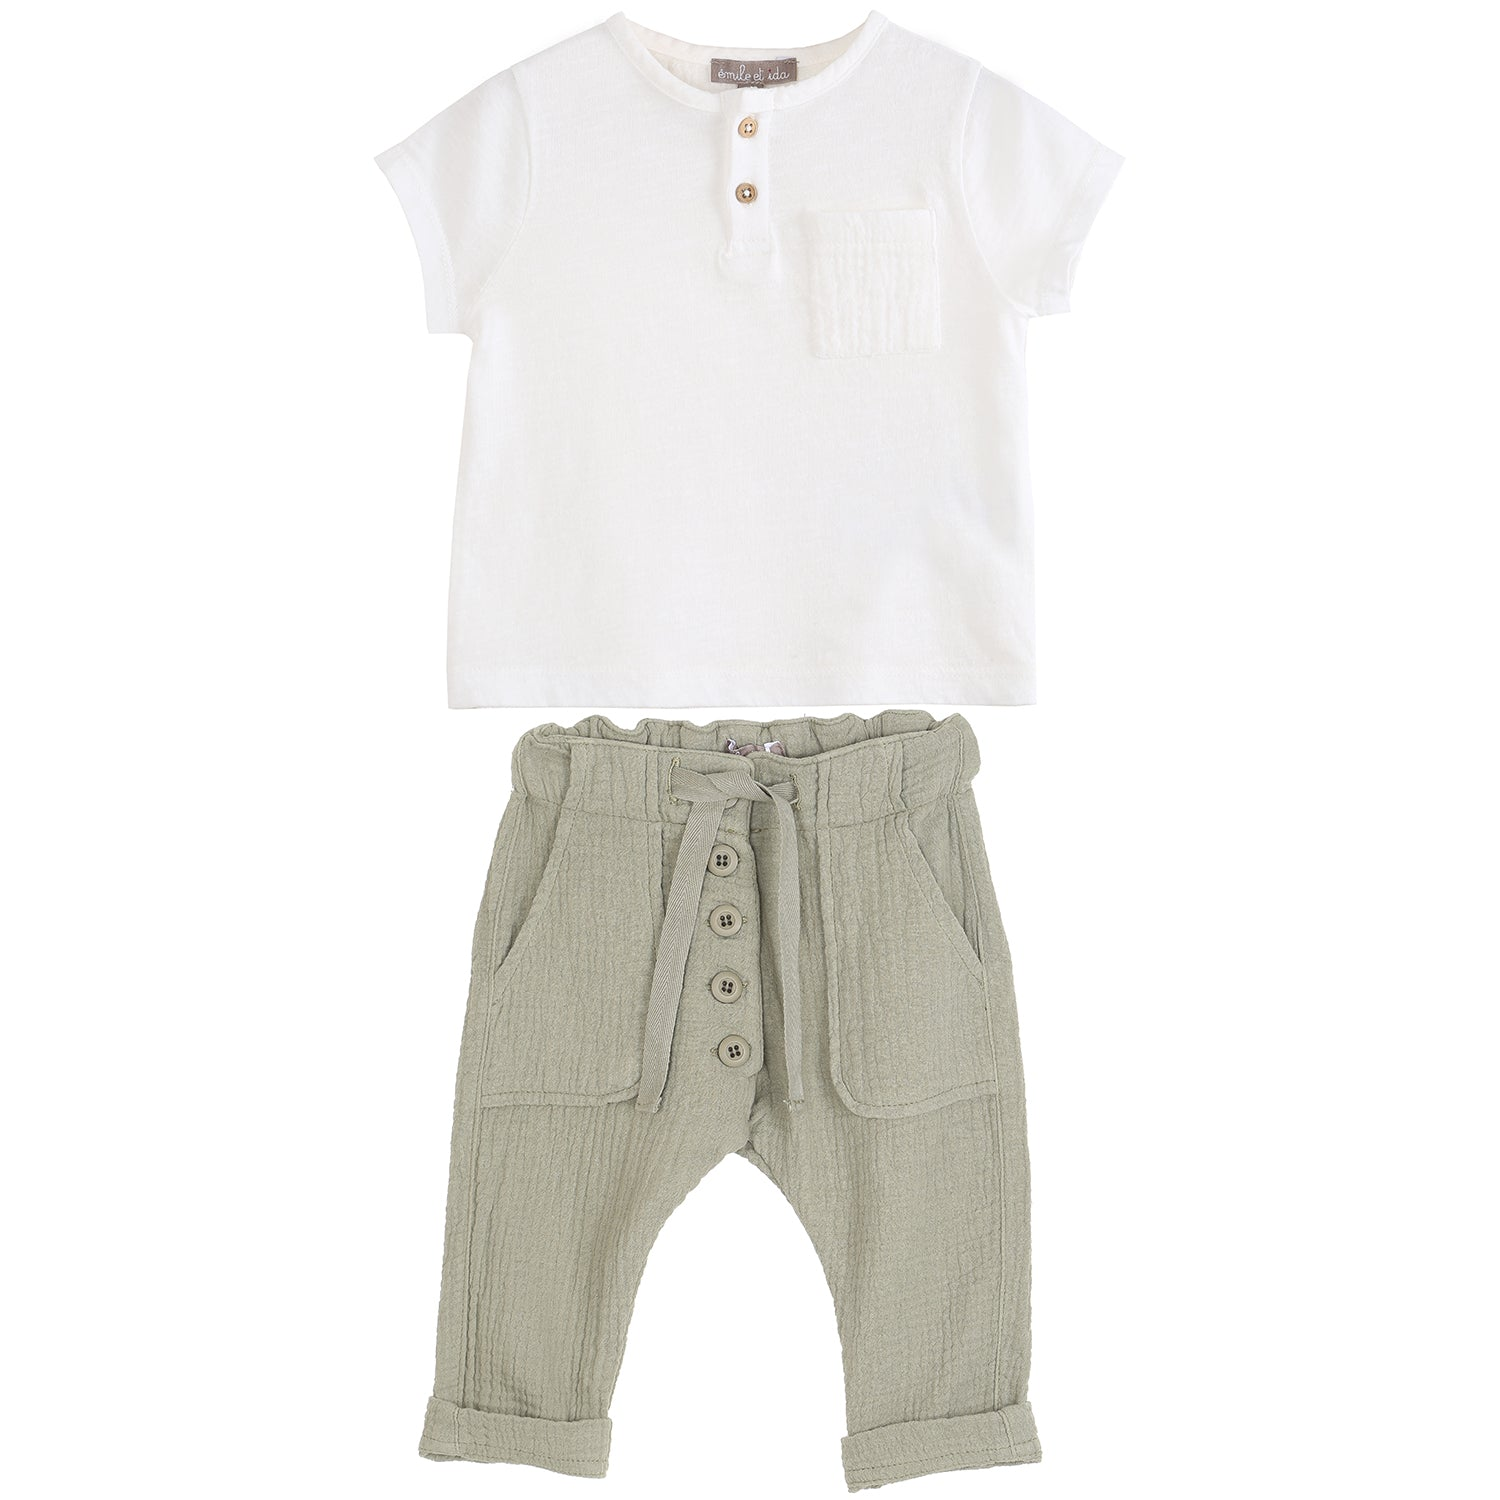 yoya, kids, baby, boys, girls, emile et ida, casual, summer, t-shirt, creped, soft pants, outfit set